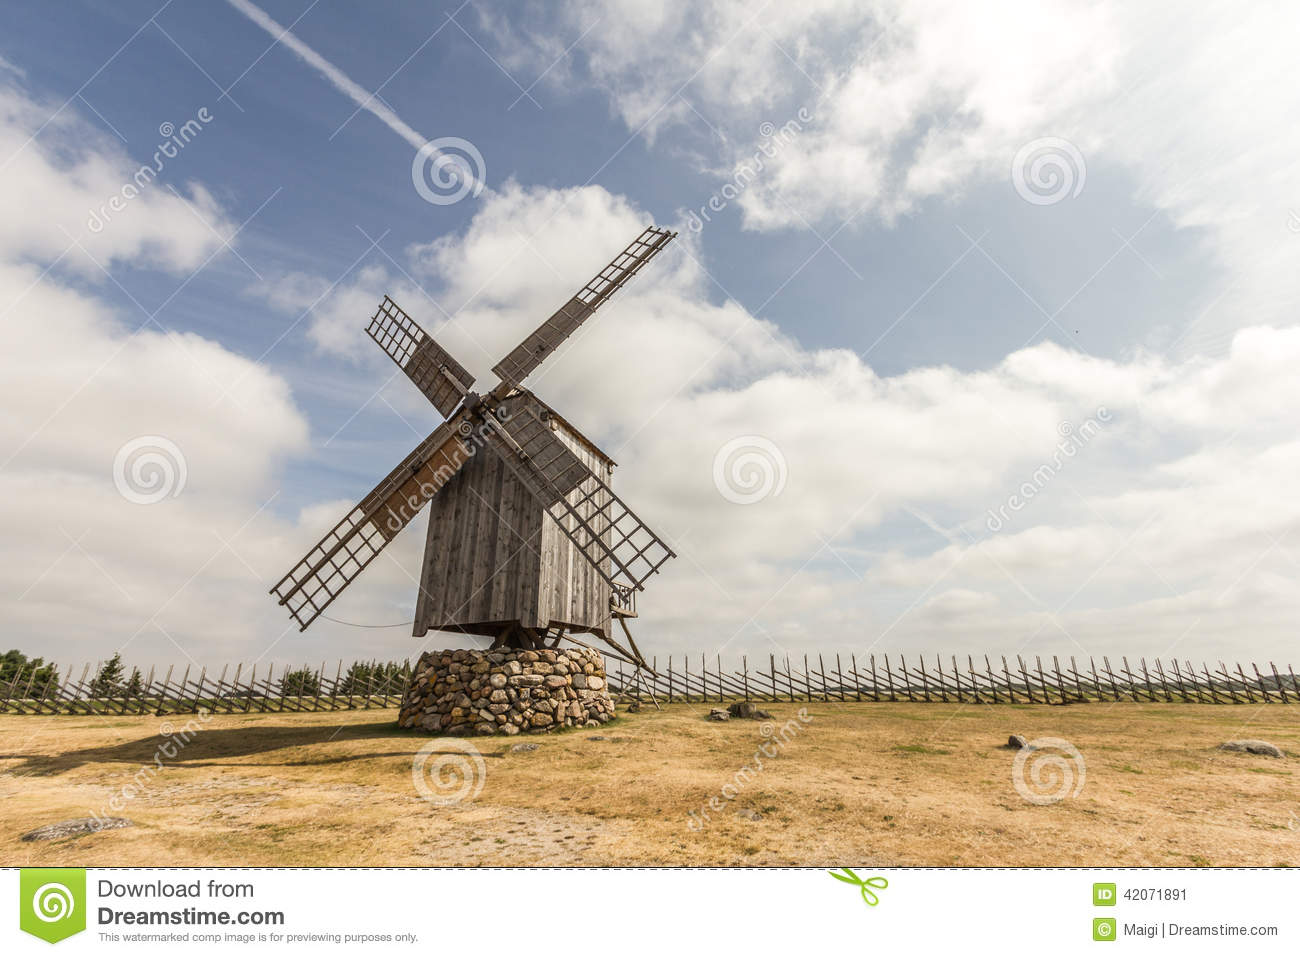 Download Windmill By The Fence stock image. Image of mills, environment - 42071891